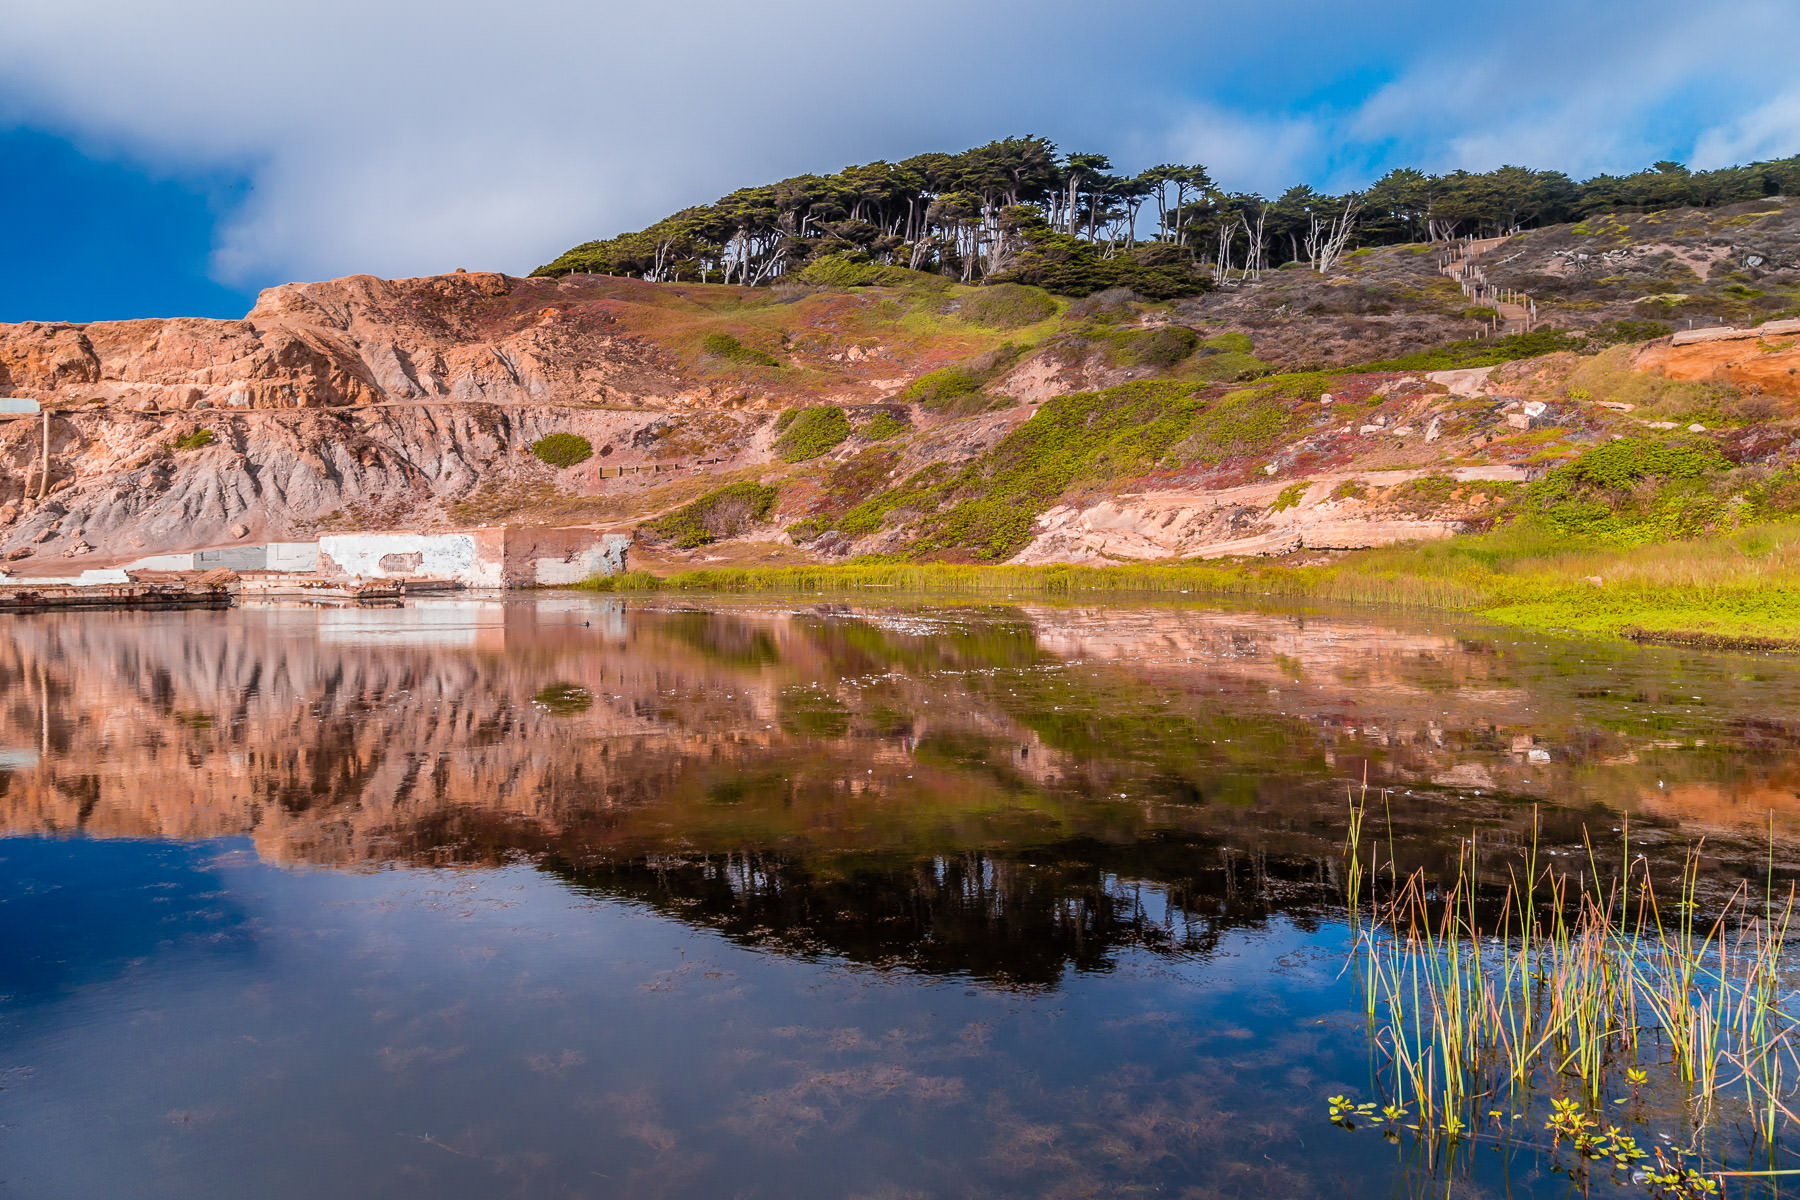 A portion of the ruins of San Francisco' Sutro Baths is reflected in a pond at Lands End.